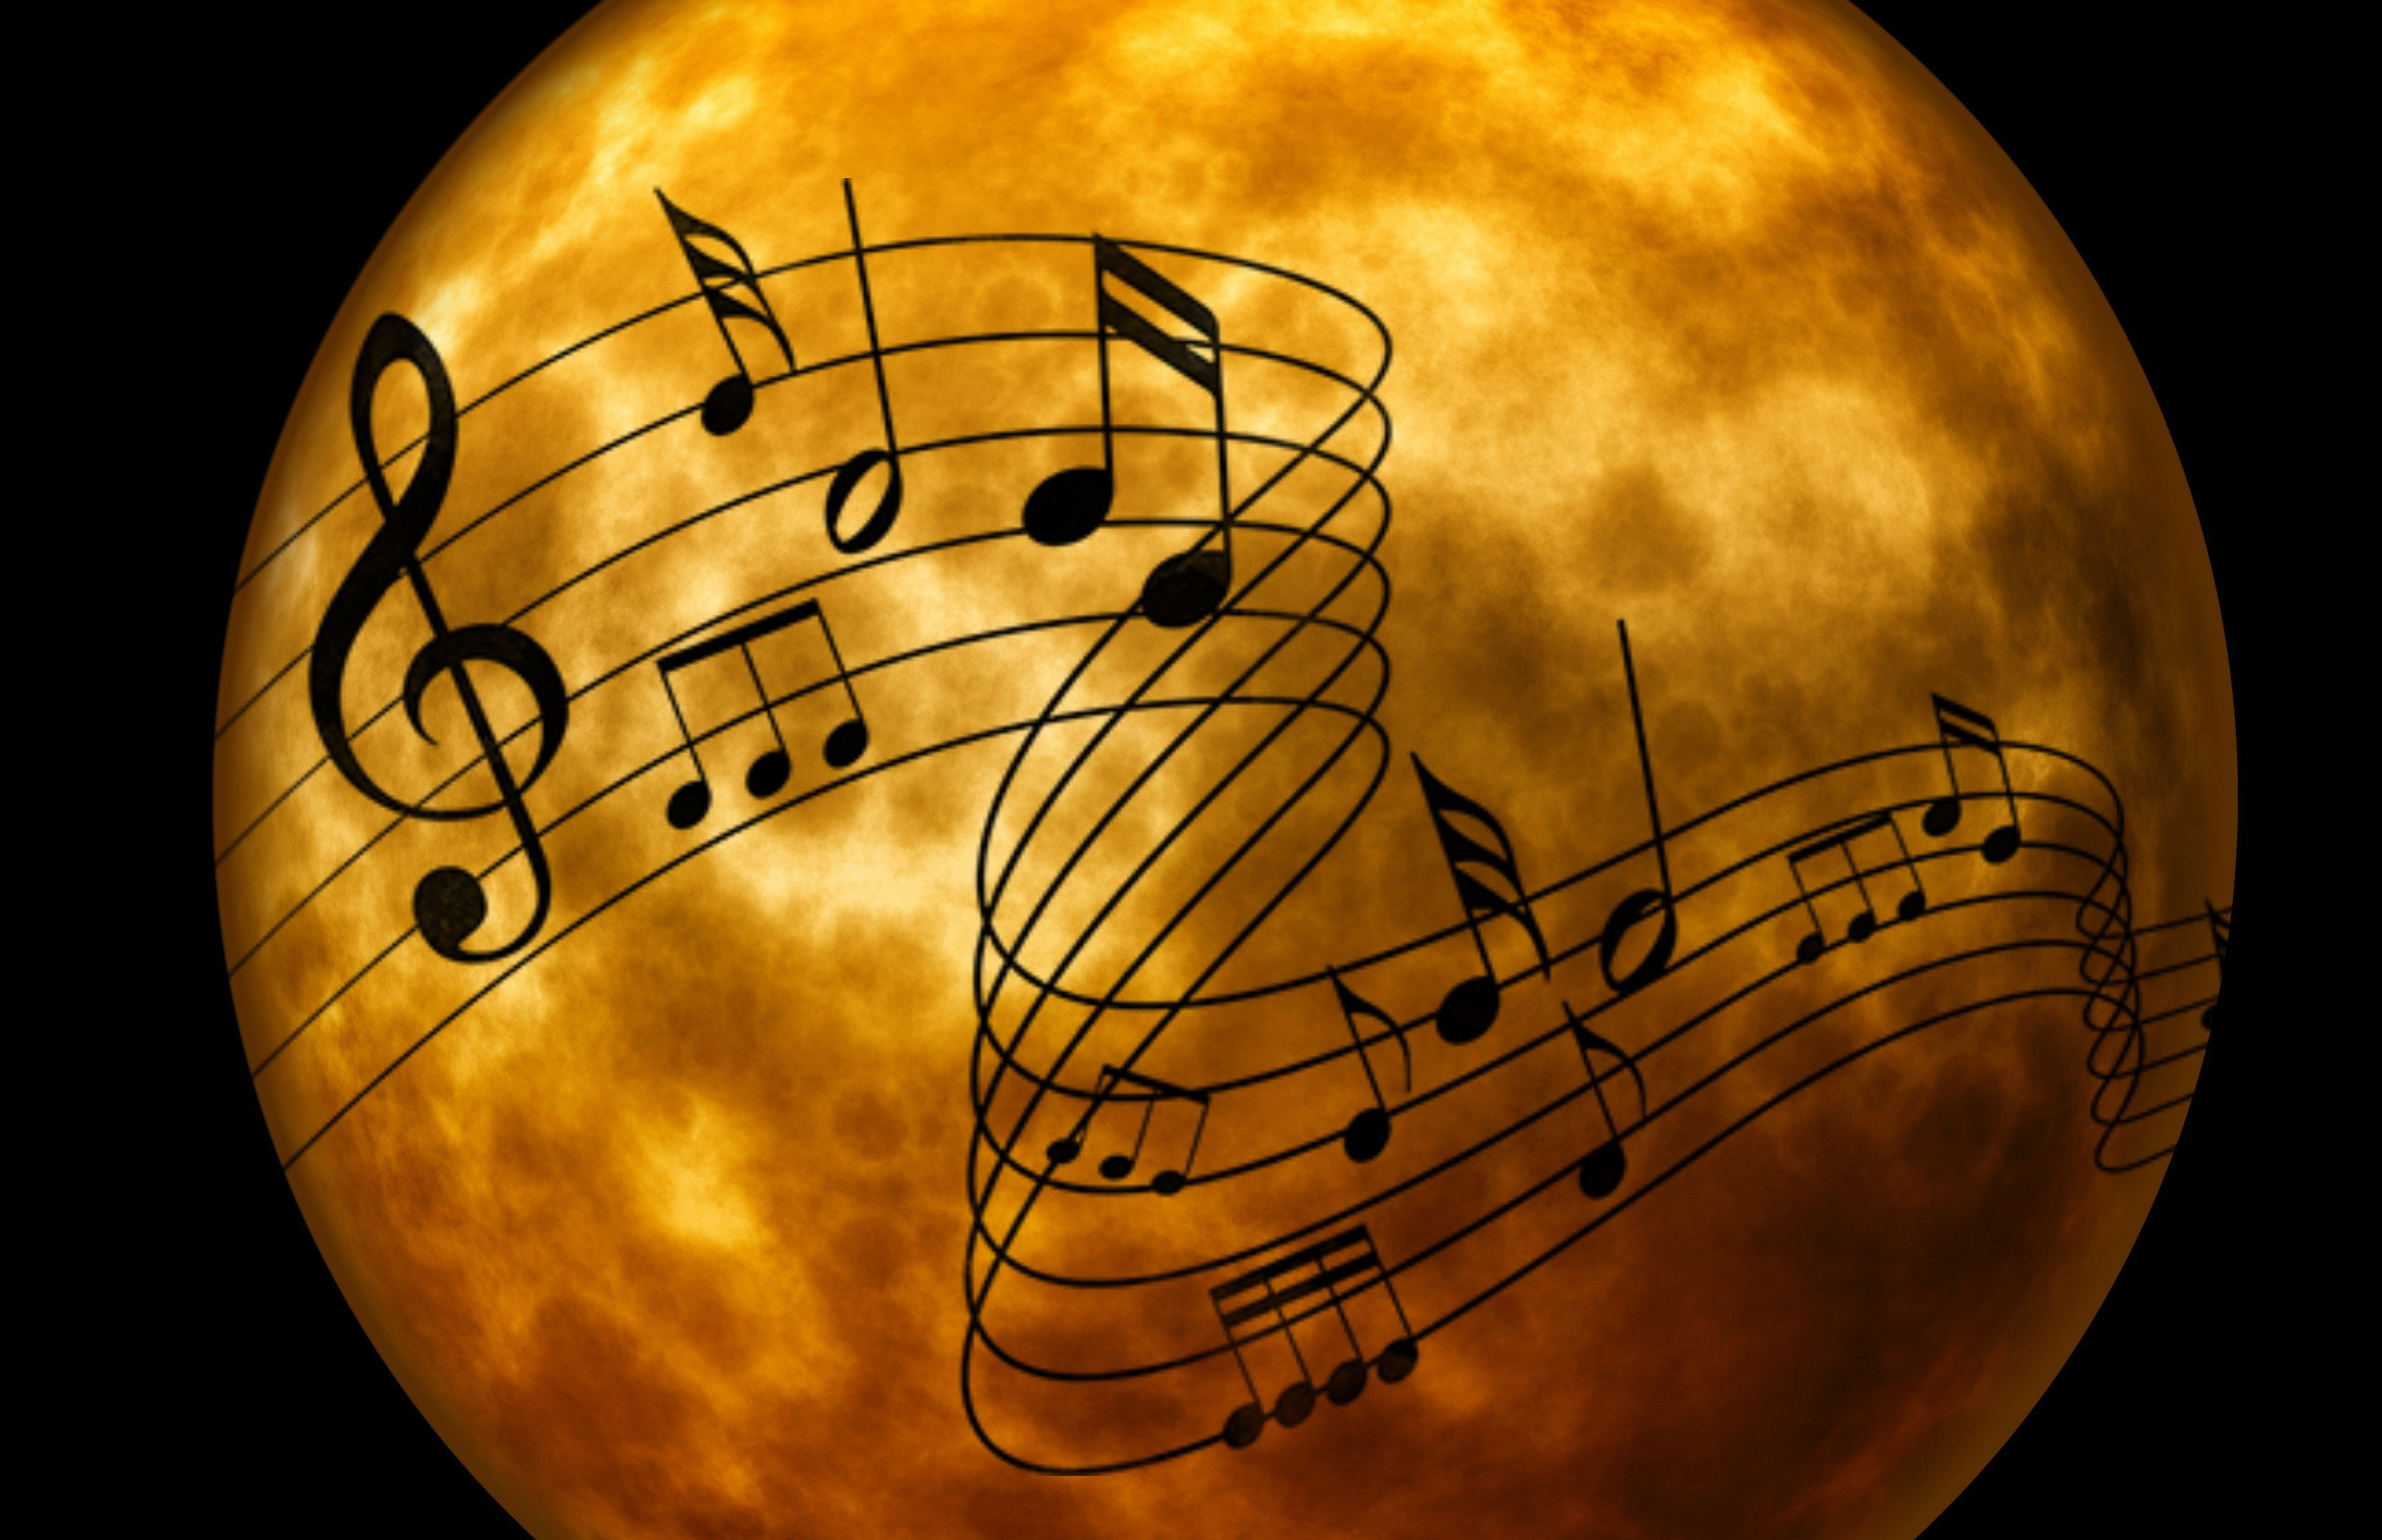 music-notes-over-the-moon - Geanna Culbertson